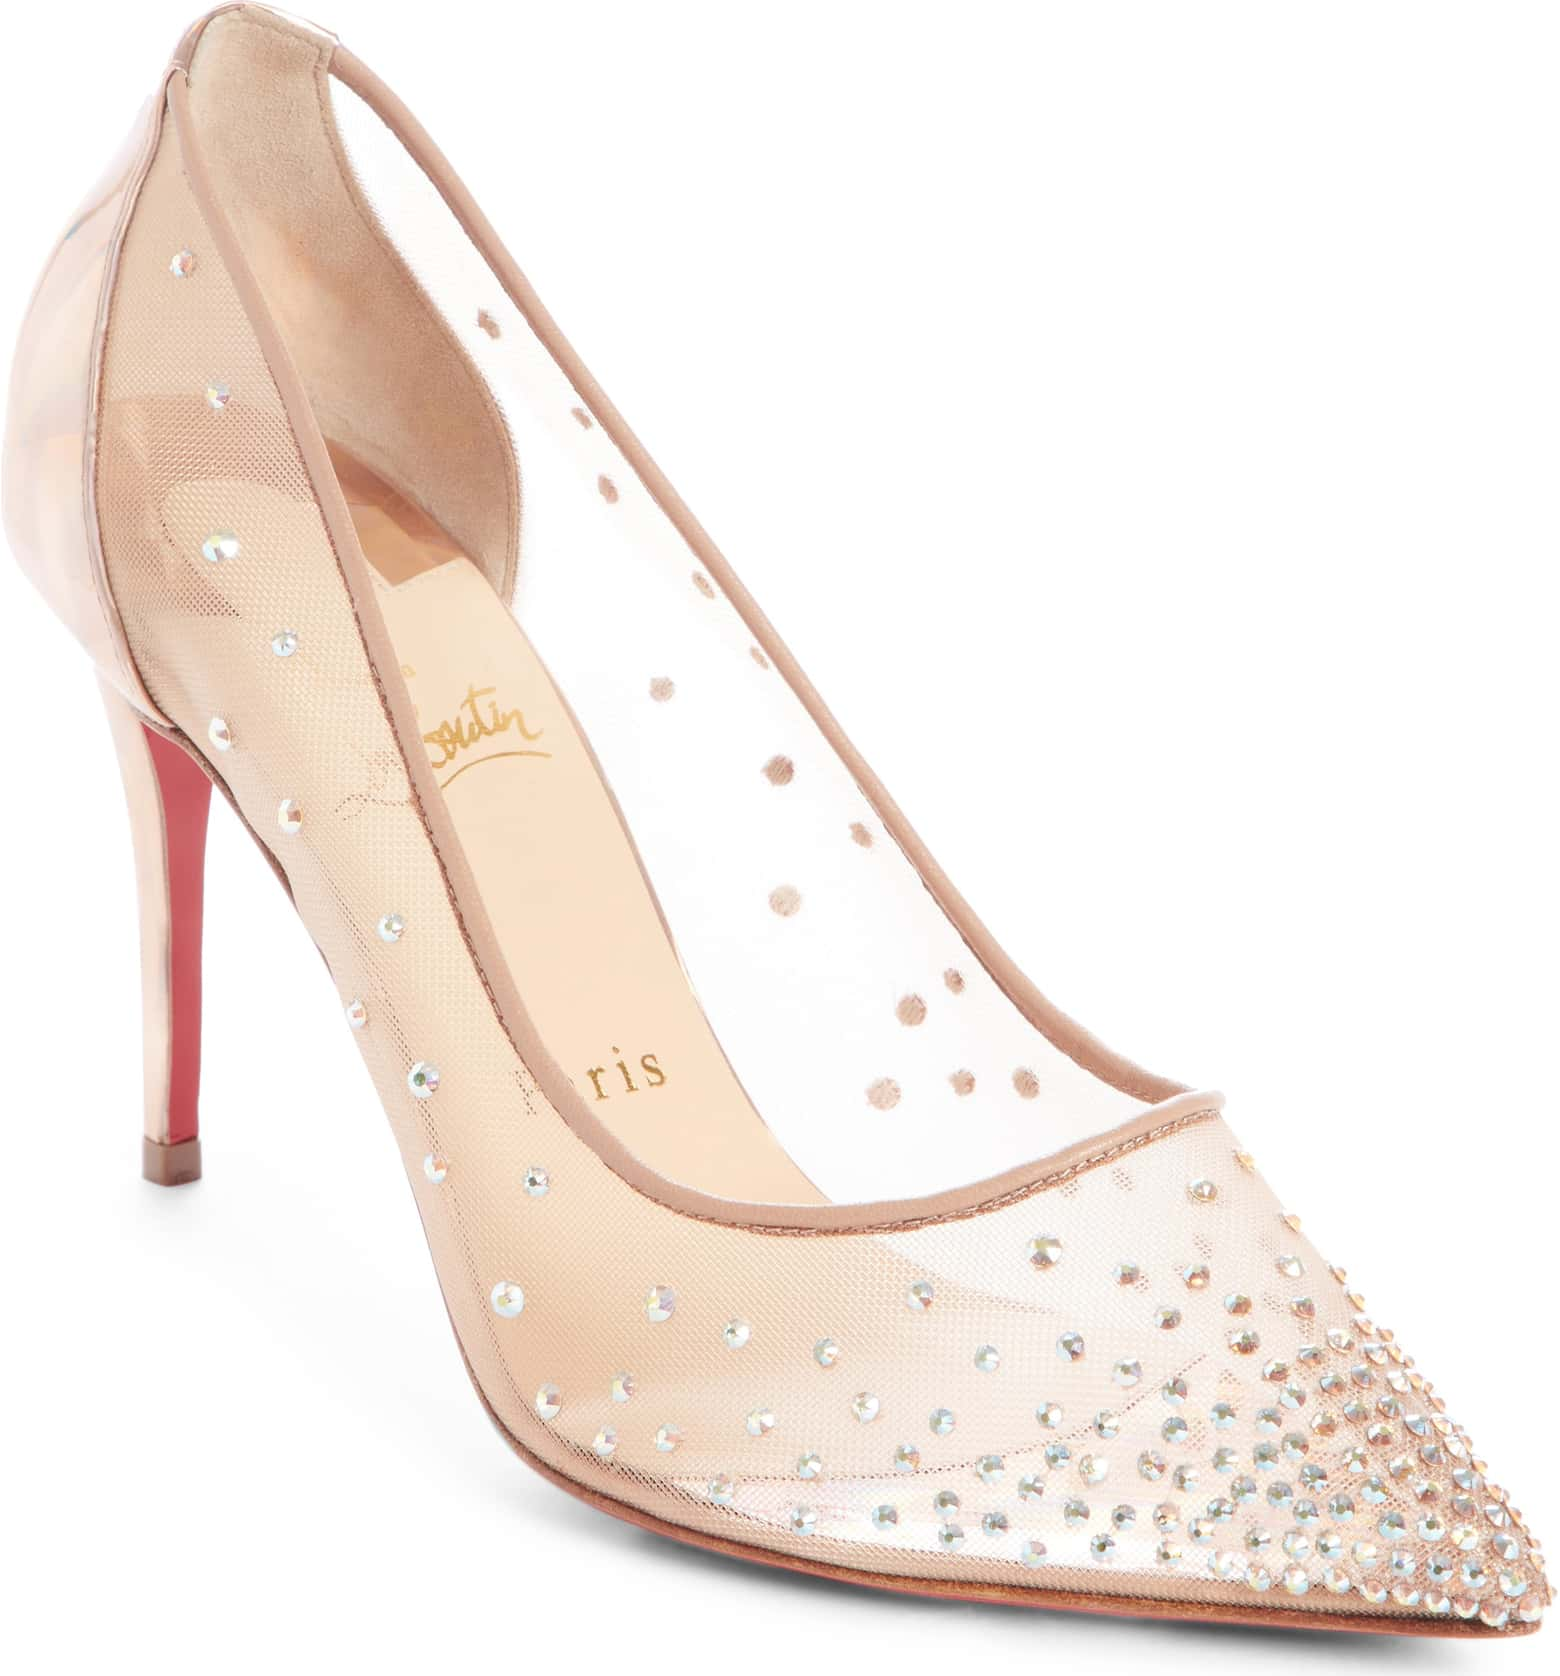 jeweled loubs.jpg